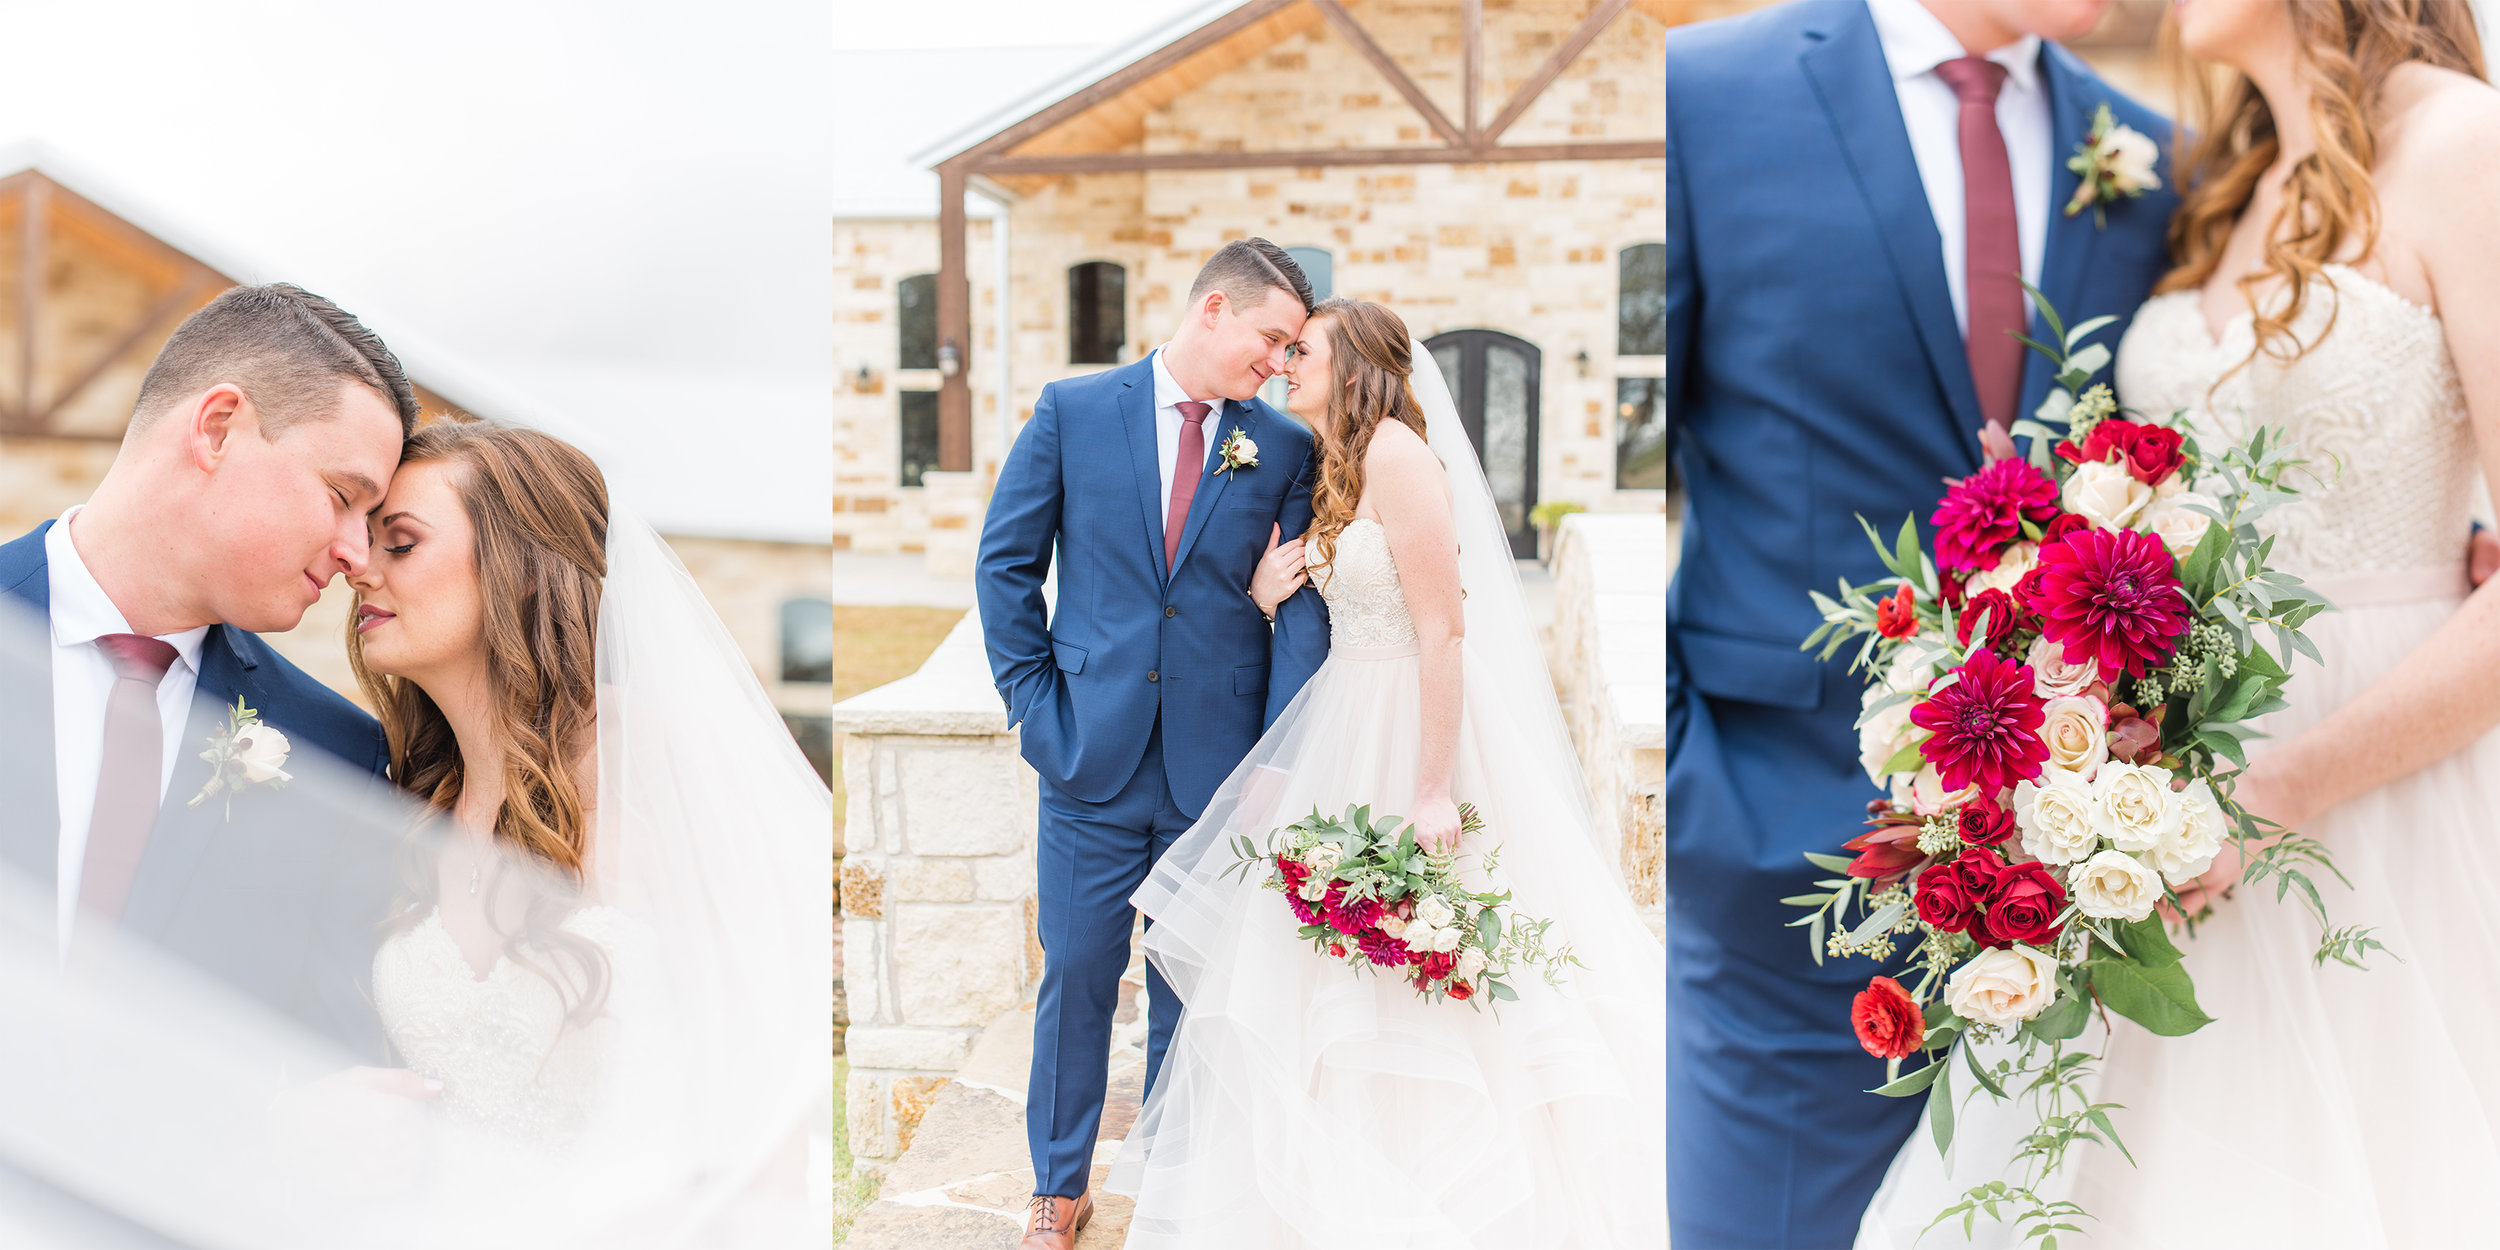 Brooke & Tyler Brownstone Reserve Wedding